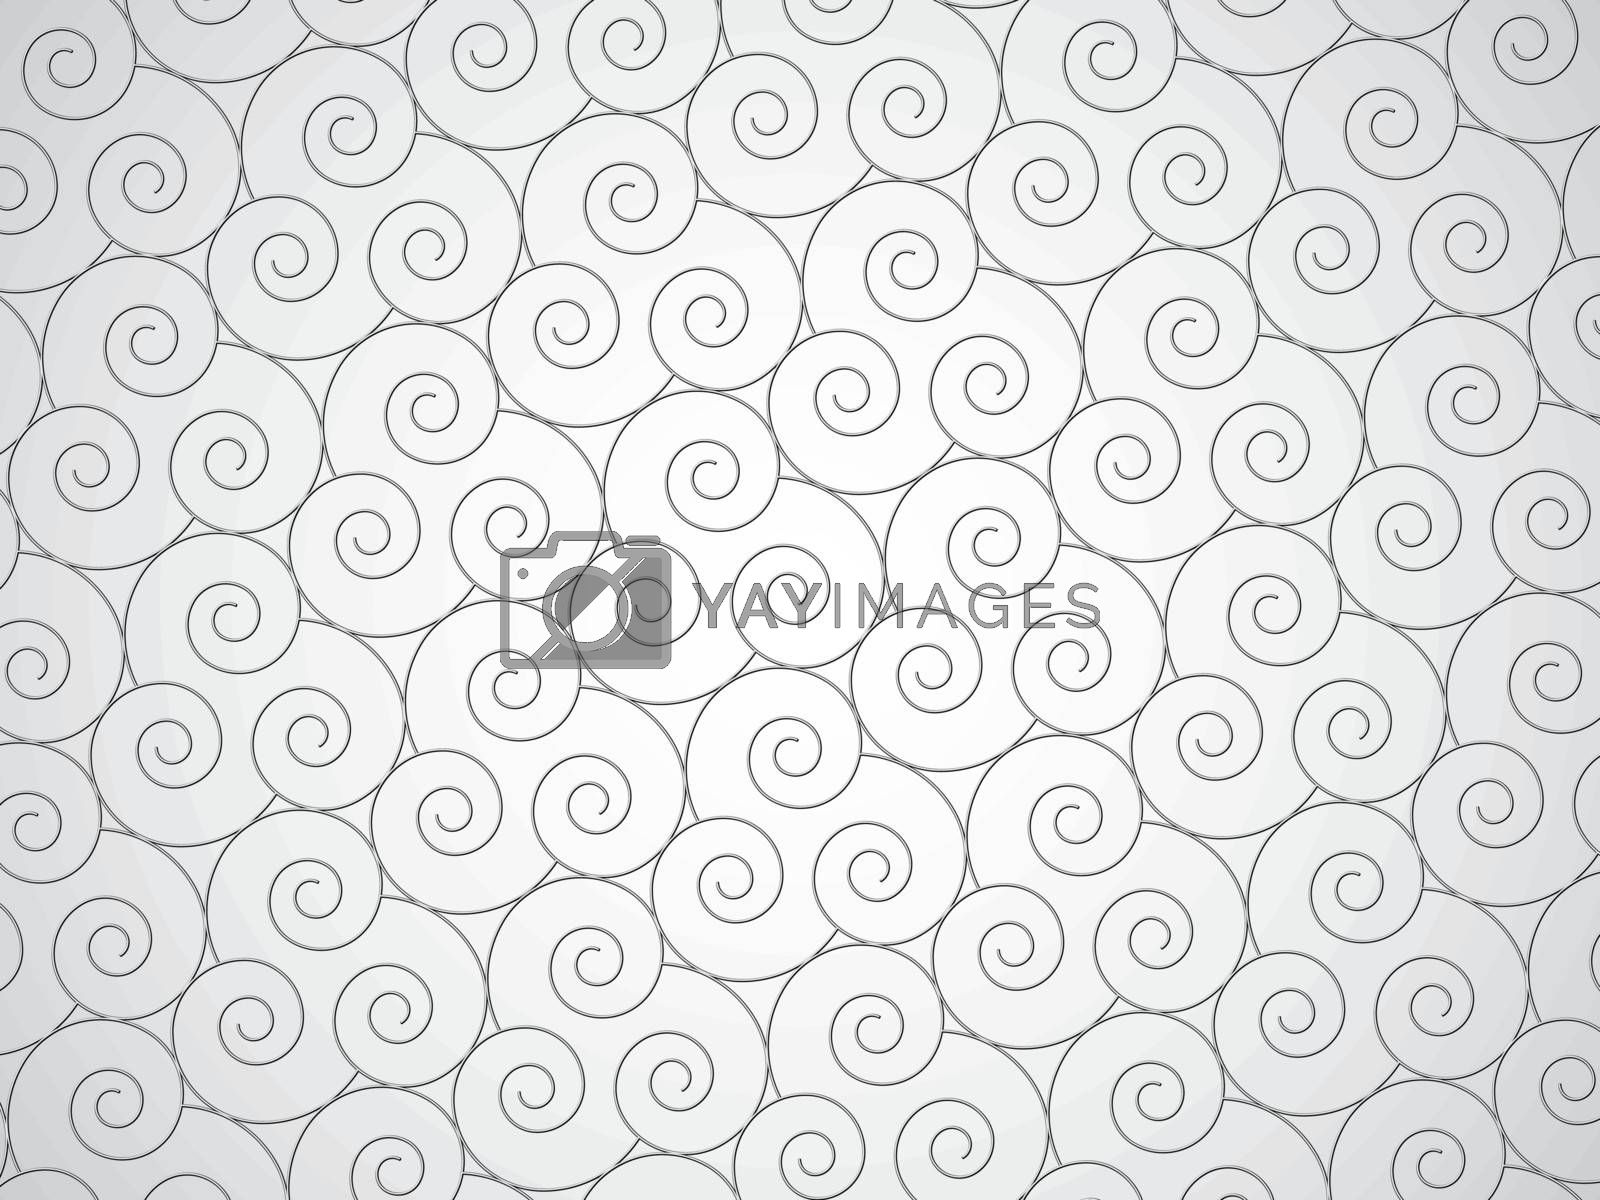 Vector abstract monochrome texture - spirals